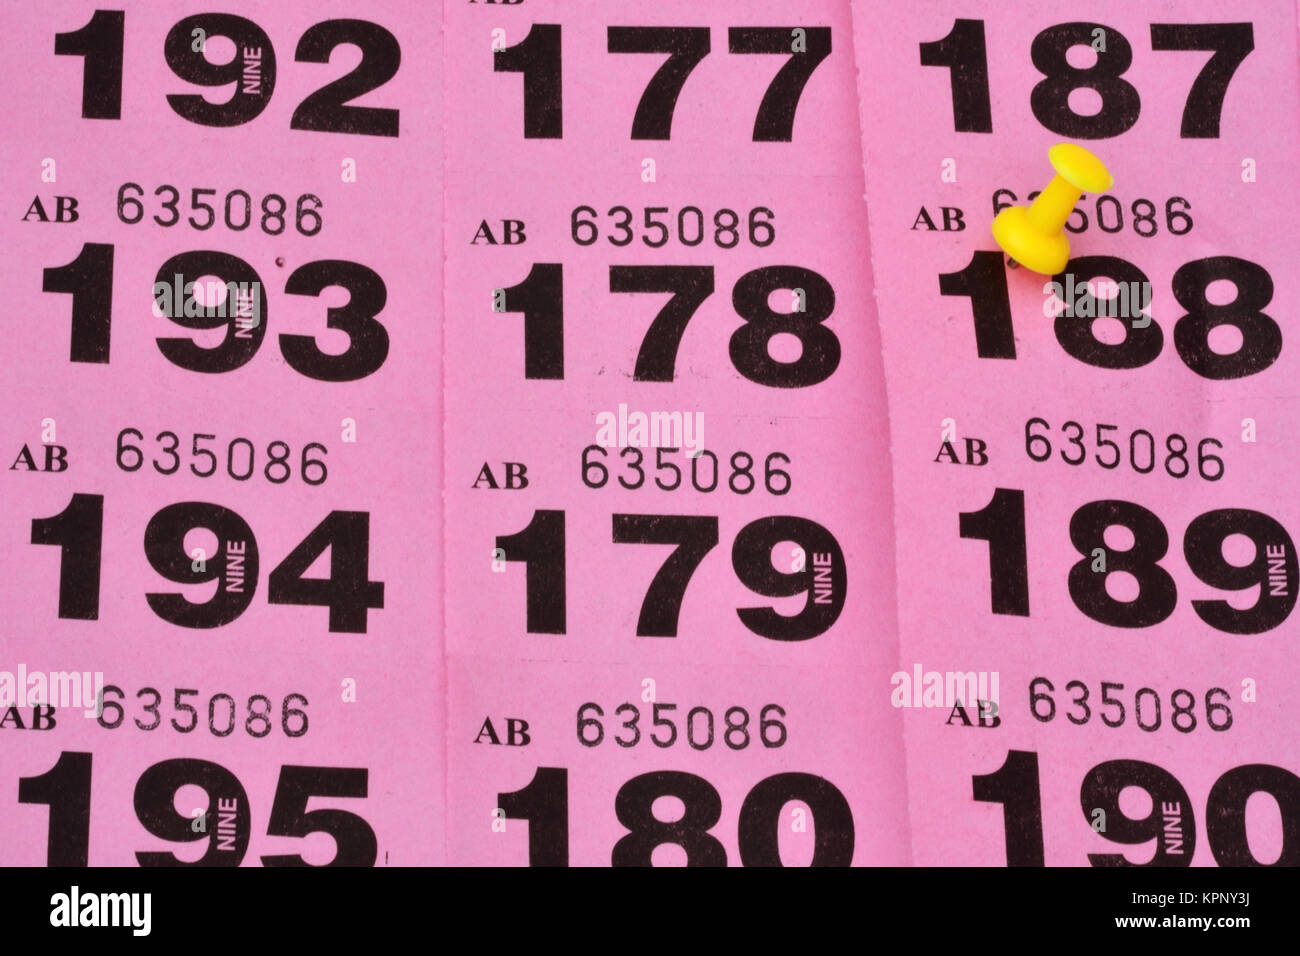 Tombola Lottery Numbers Stock Photos & Tombola Lottery Numbers Stock